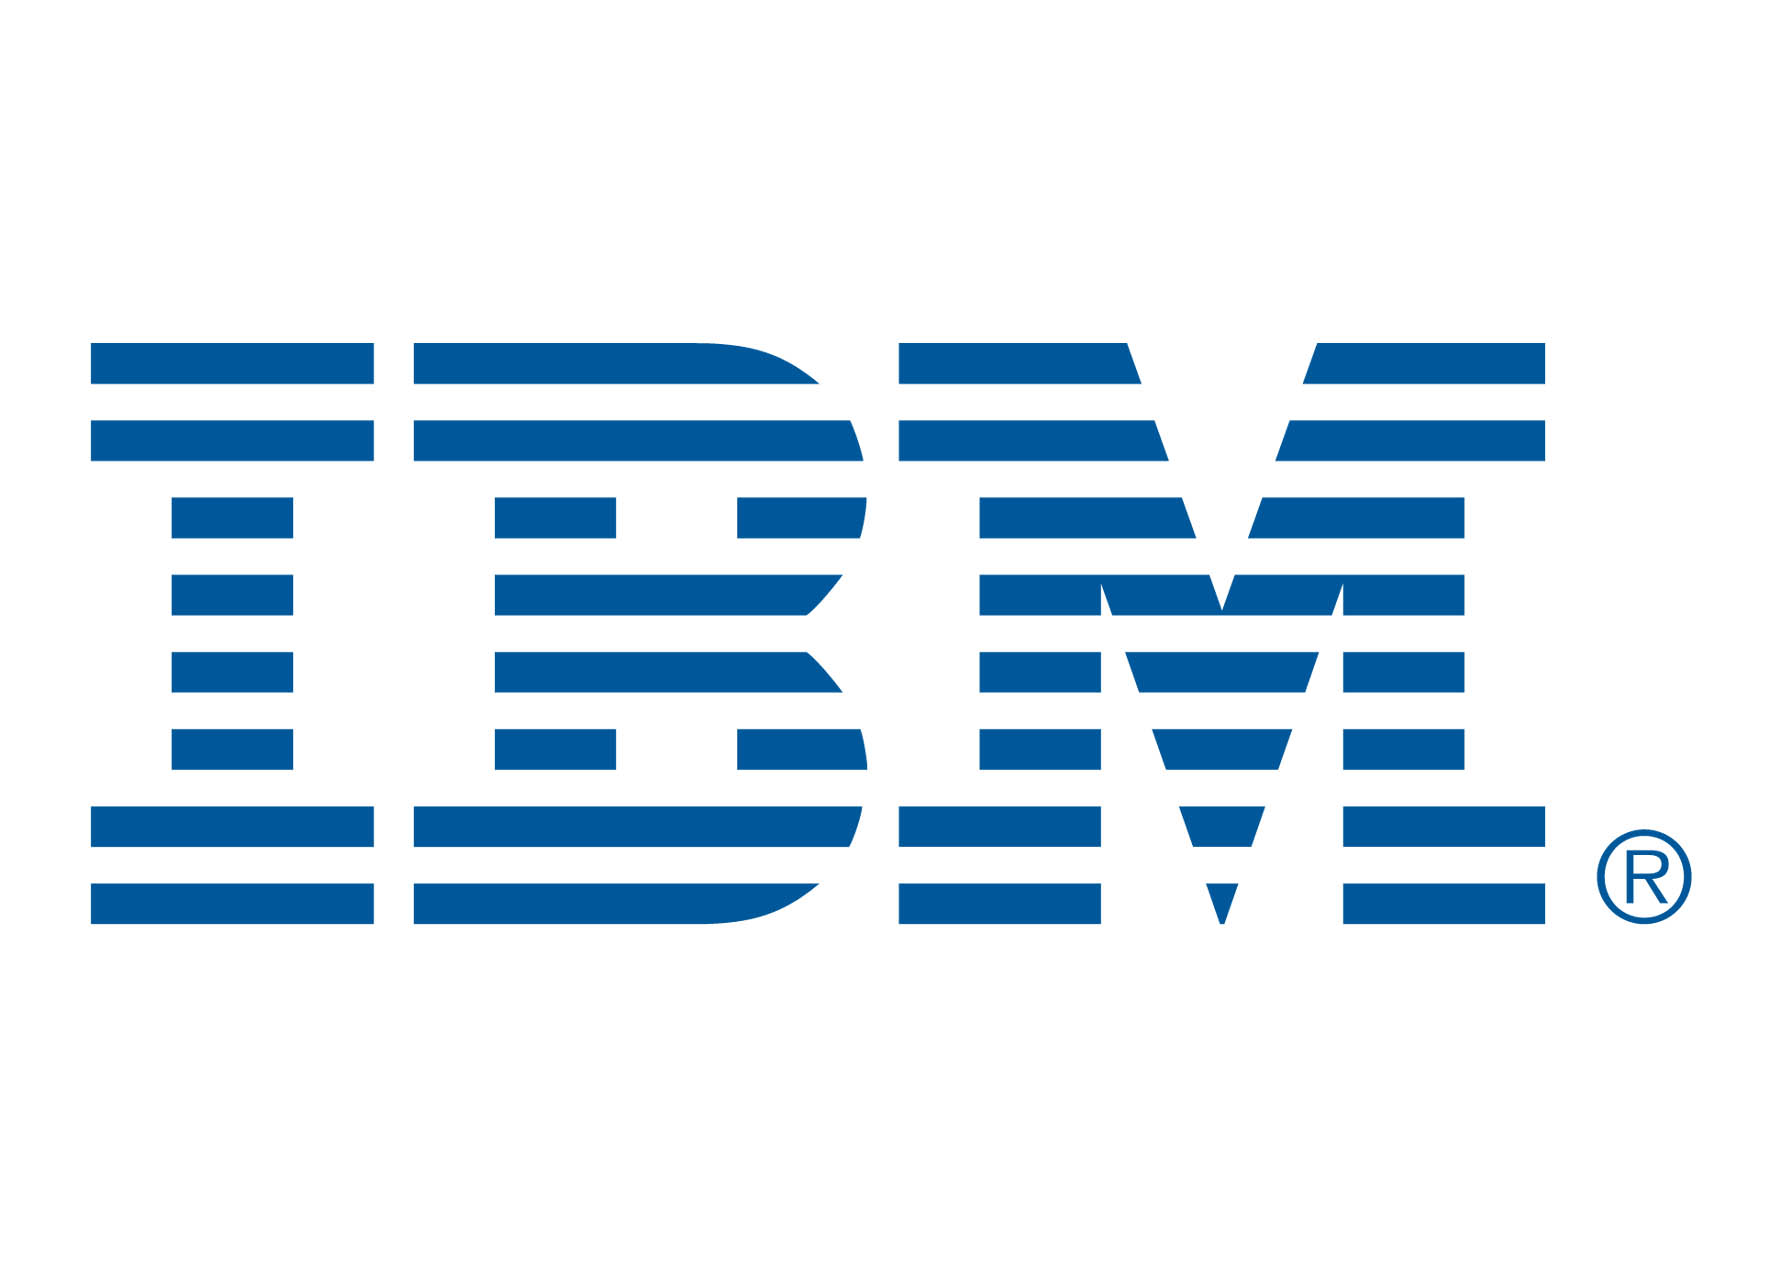 File IBM logo in also Dandr E1sbjomgx together with Lavorare Per Amazon additionally Uvm arbolfinanciero as well Microsoft Azure. on amazon logo